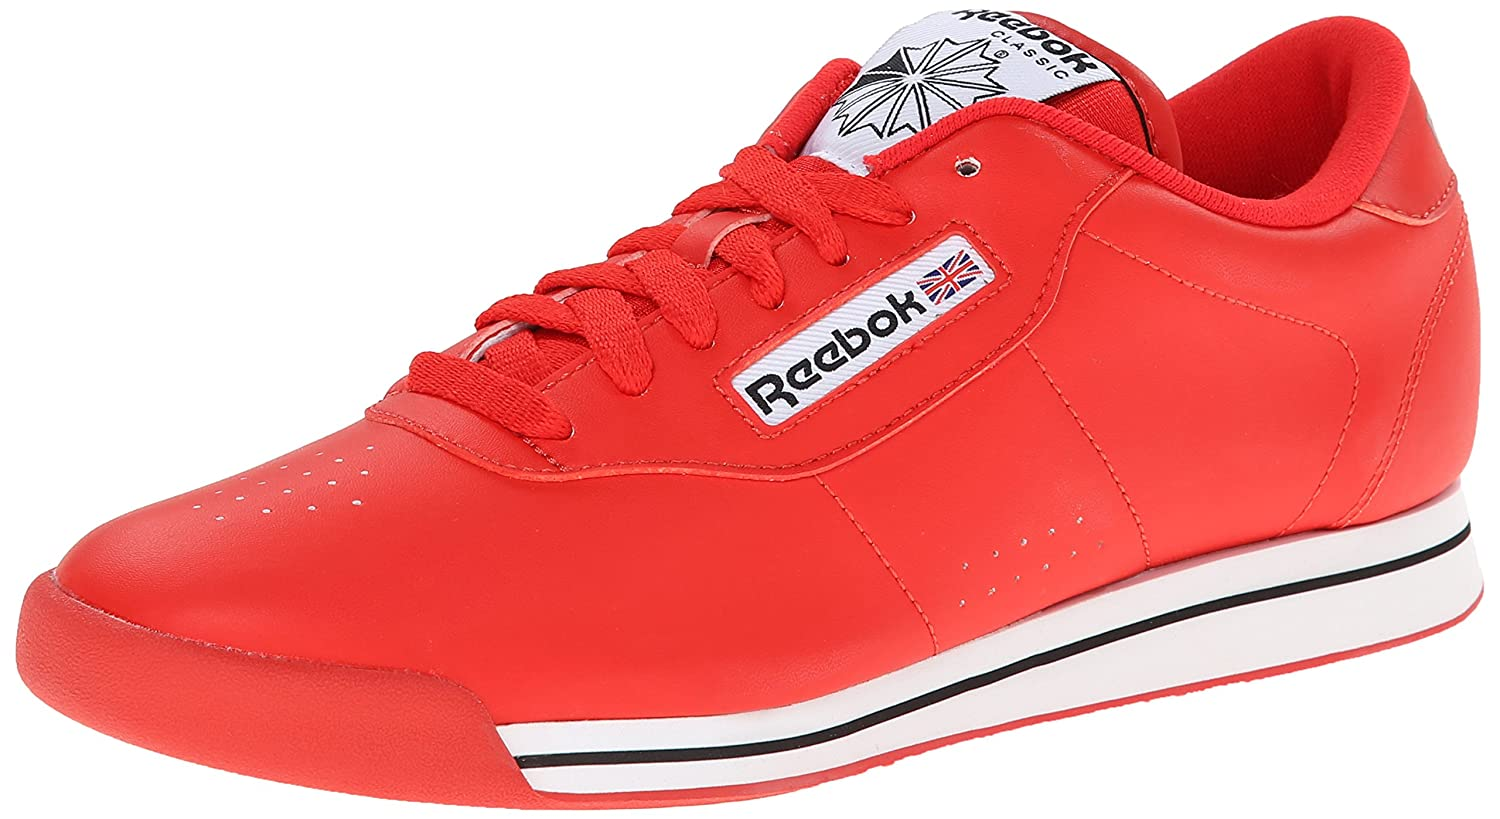 [リーボック] スニーカー PRINCESS B006W47Q96 7|Techy Red/White/Black Techy Red/White/Black 7